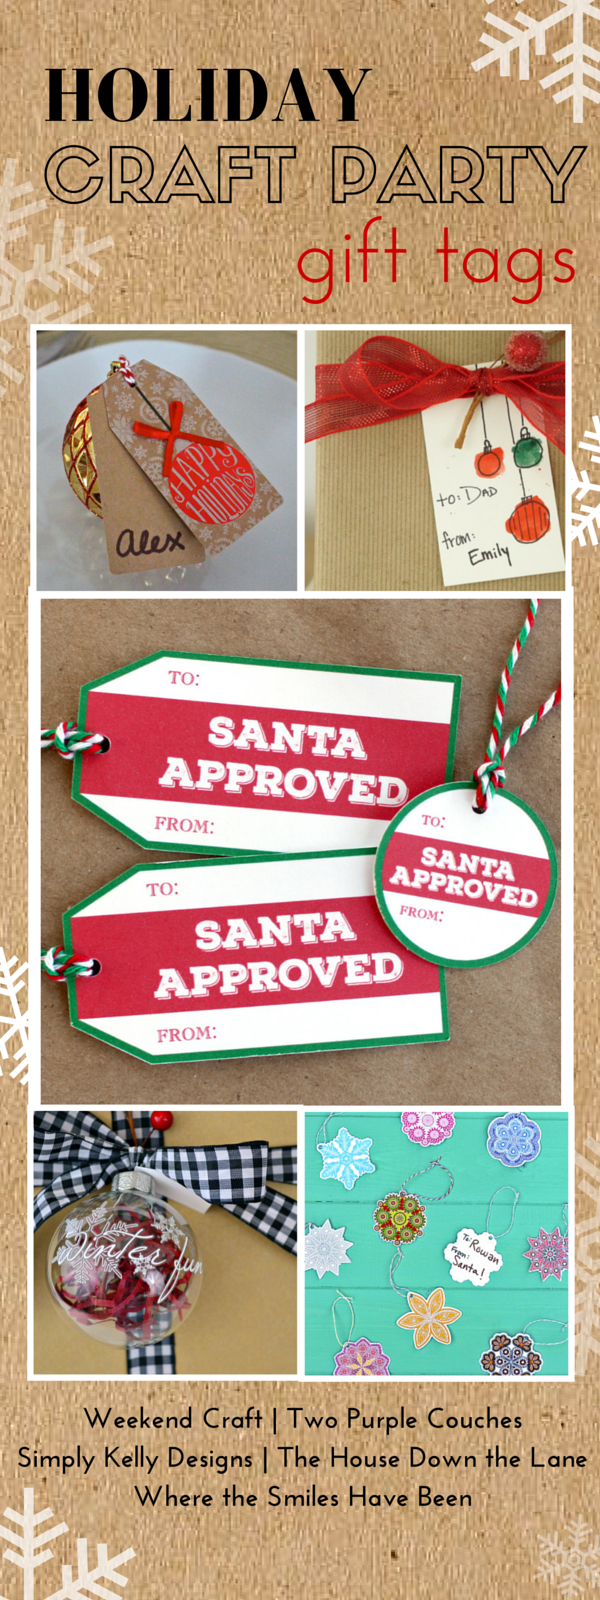 Holiday Craft Party Gift Tags